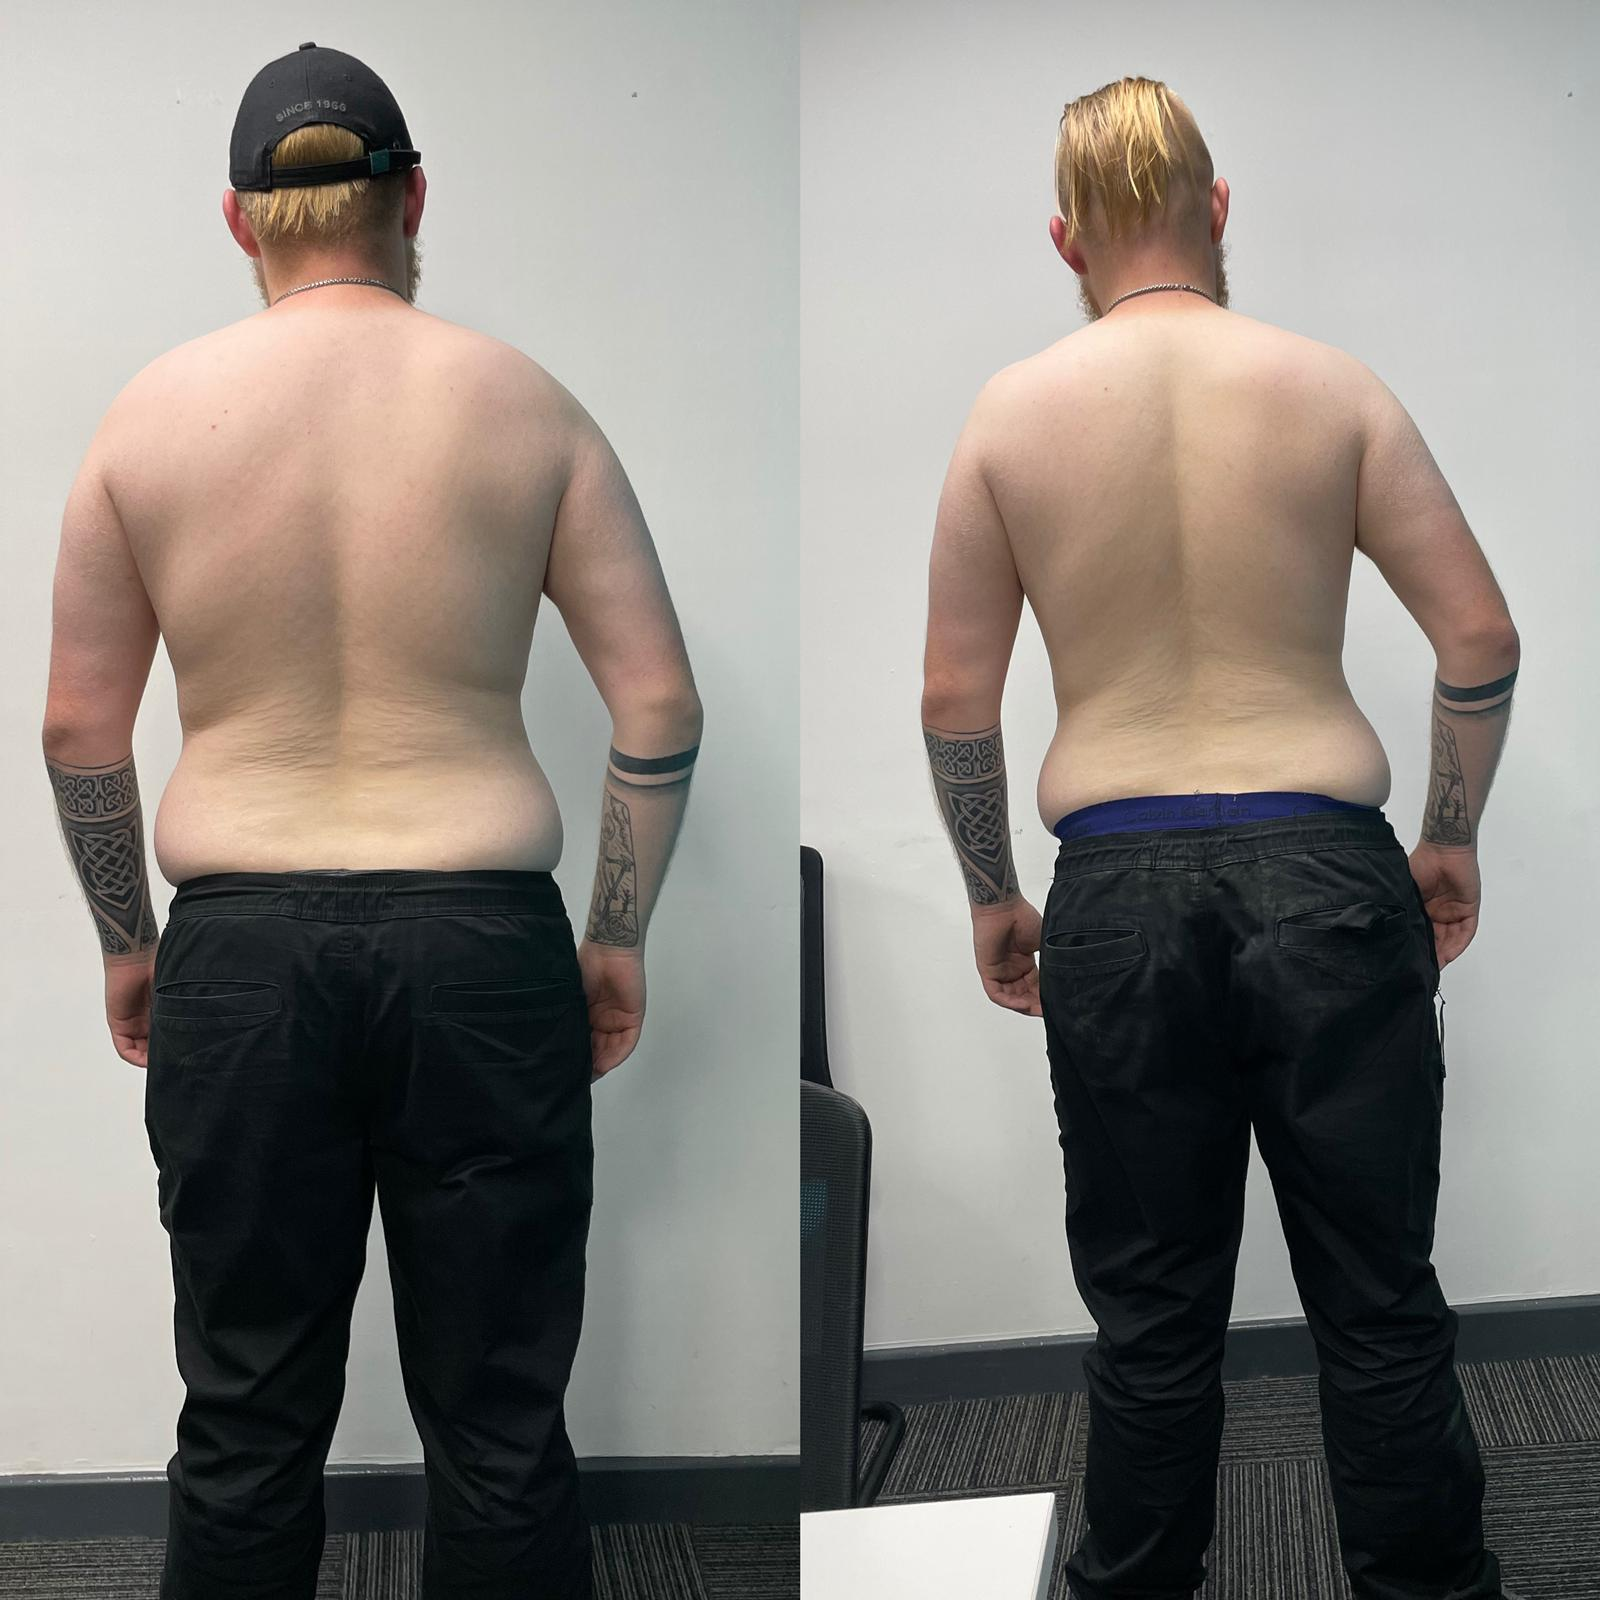 Before and After 33 lbs Weight Loss 6'2 Male 242 lbs to 209 lbs